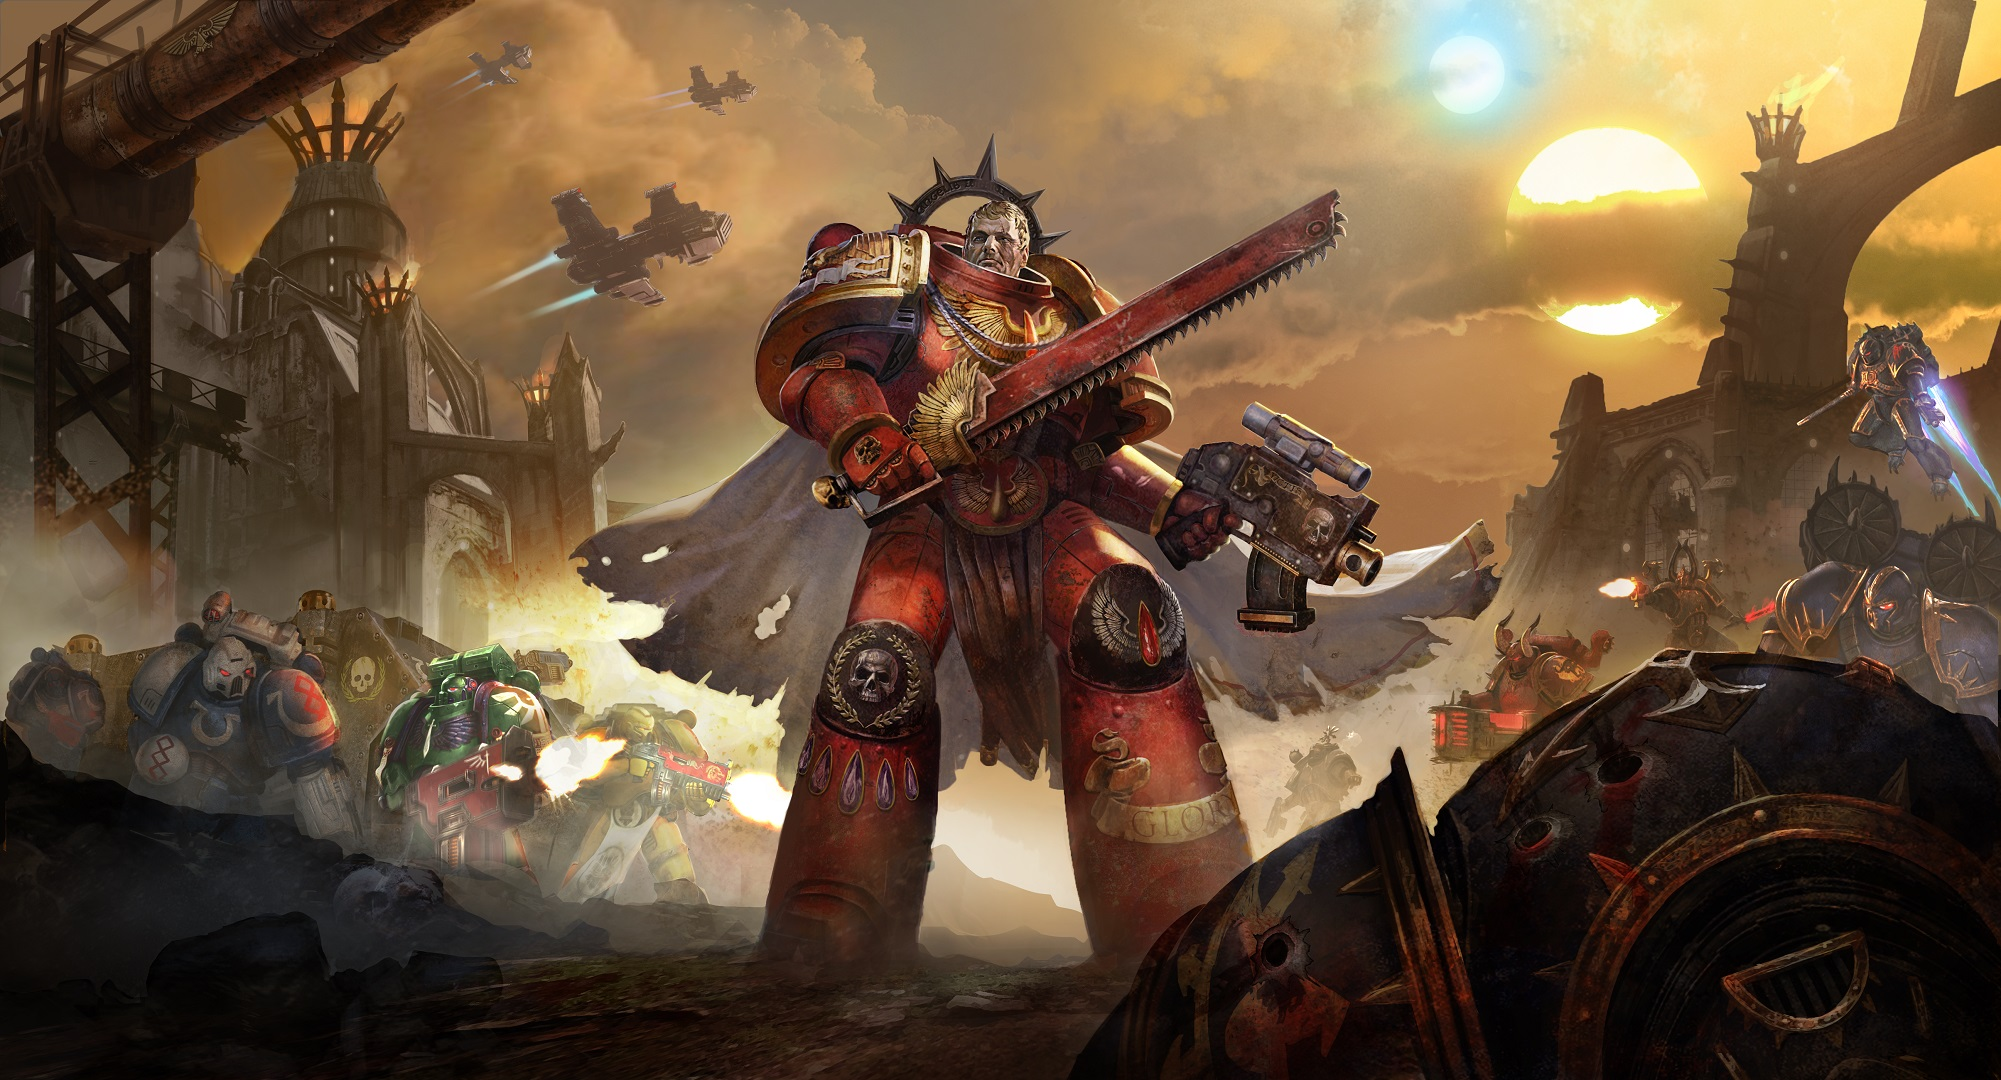 Warhammer 40,000: Eternal Crusade Heading to PlayStation 4, Xbox One, PC in Summer 2016